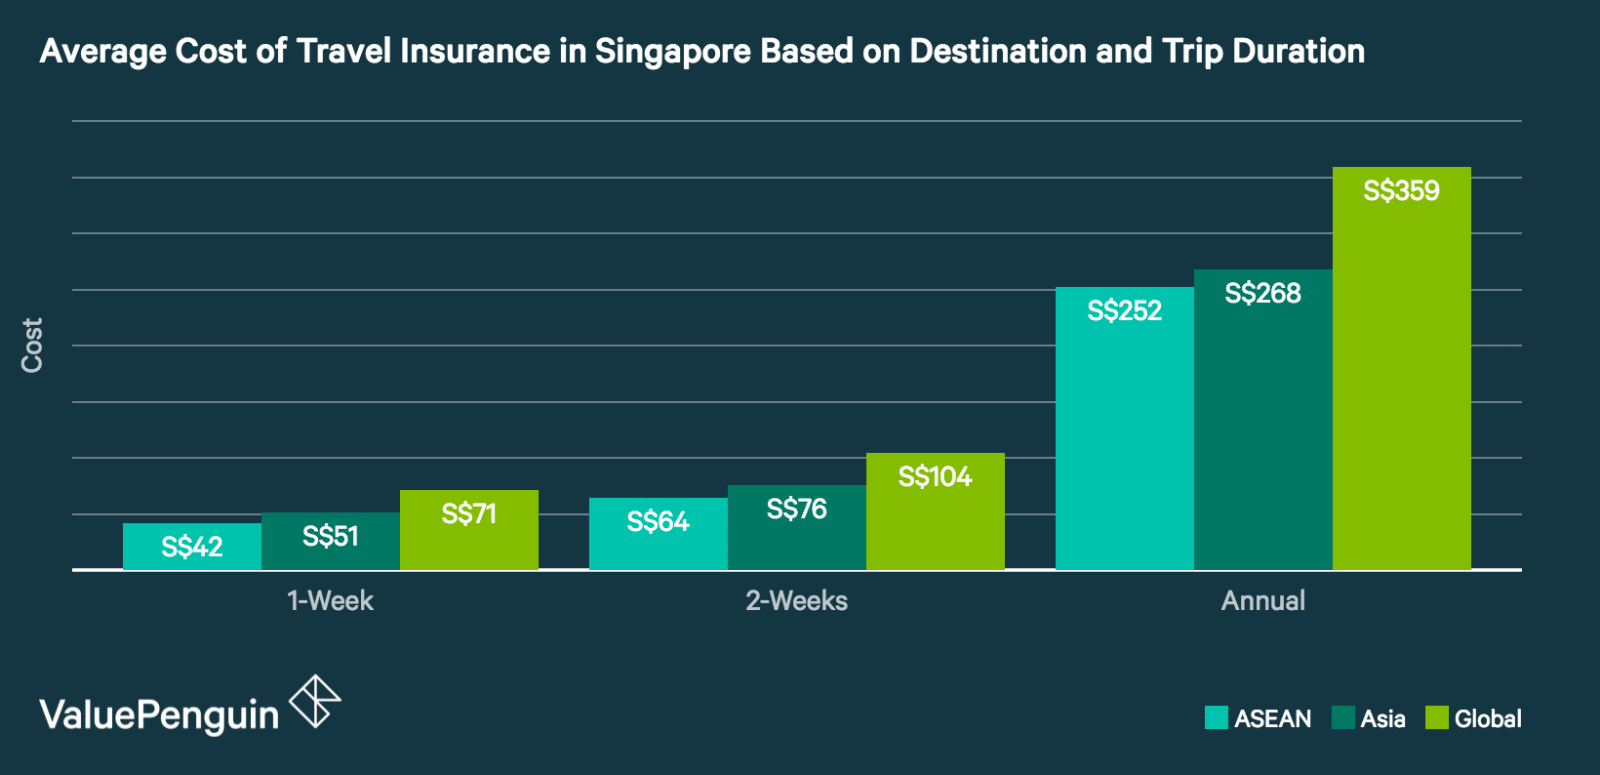 This graph shows the average cost of travel insurance by region and length of trip